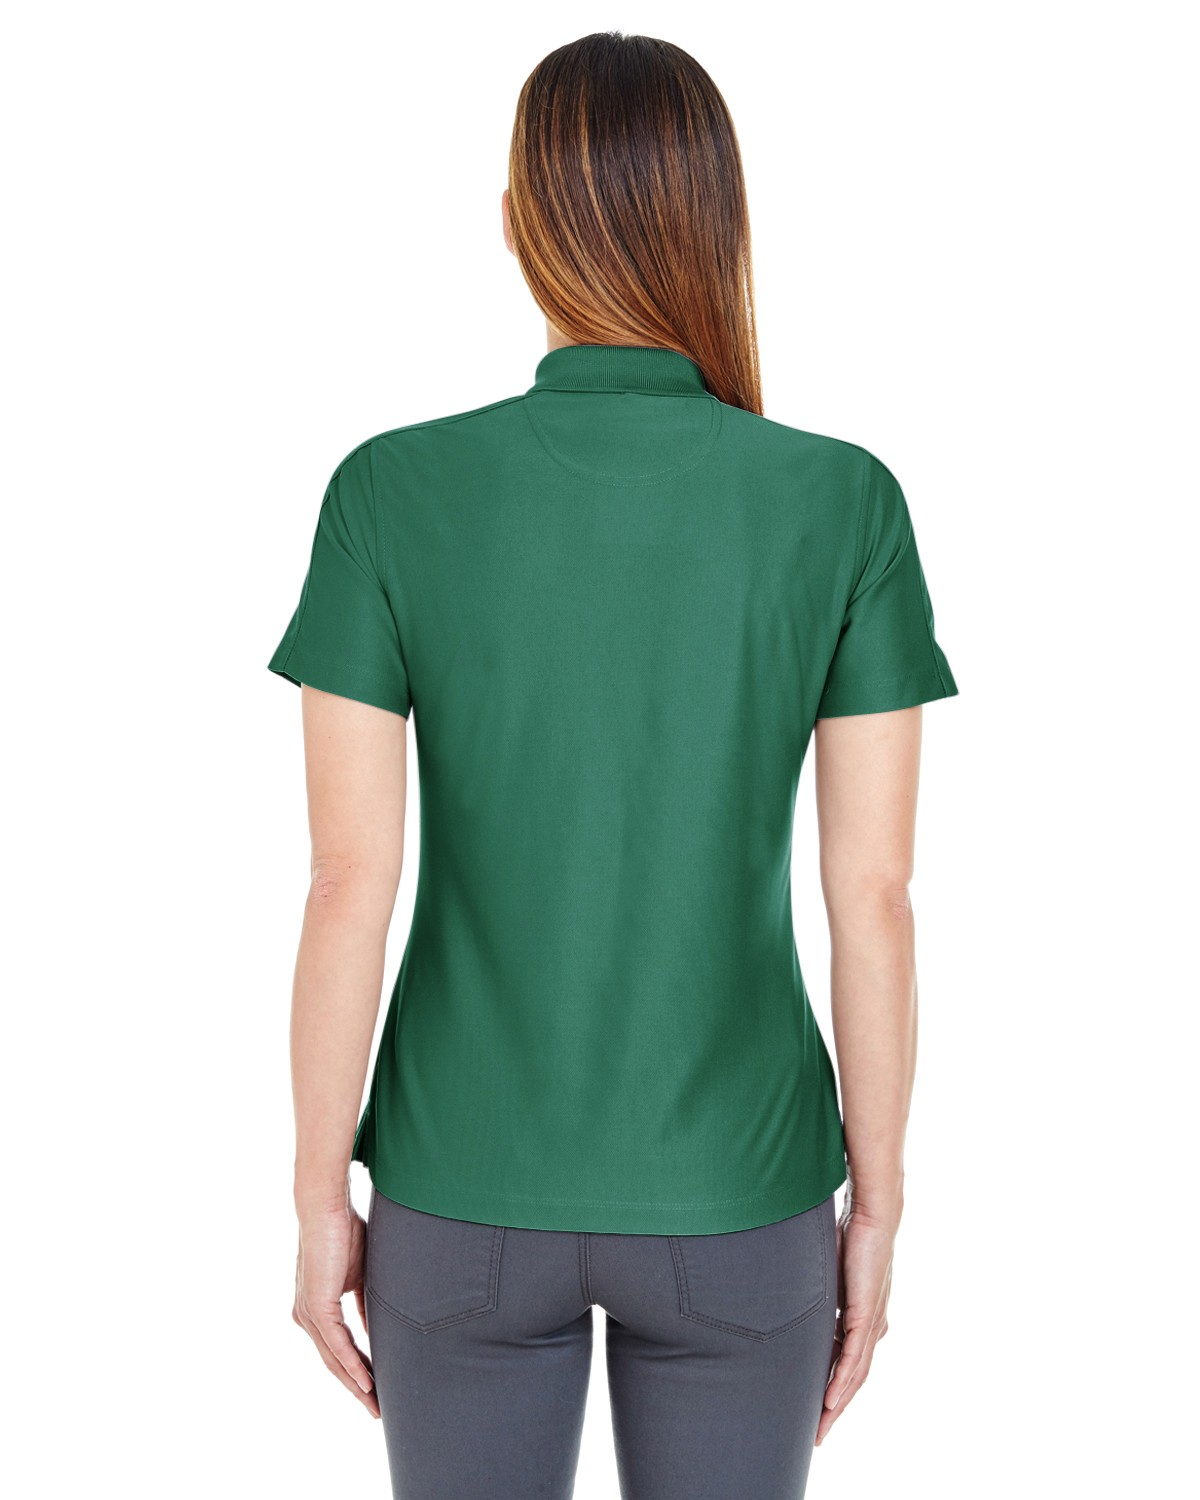 8414 UltraClub FOREST GREEN